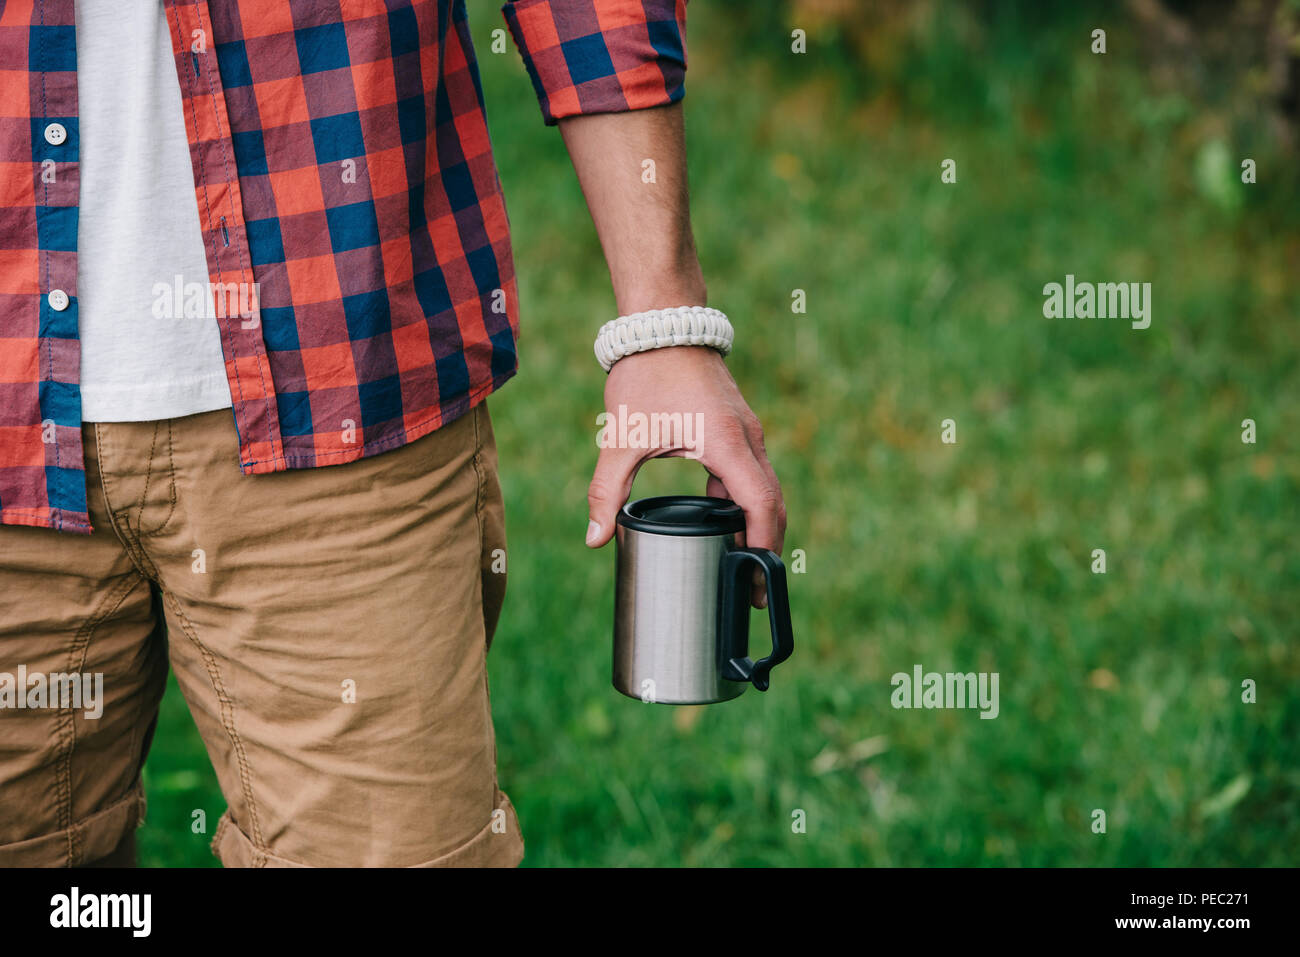 partial view of man in checkered shirt holding mug outdoors - Stock Image